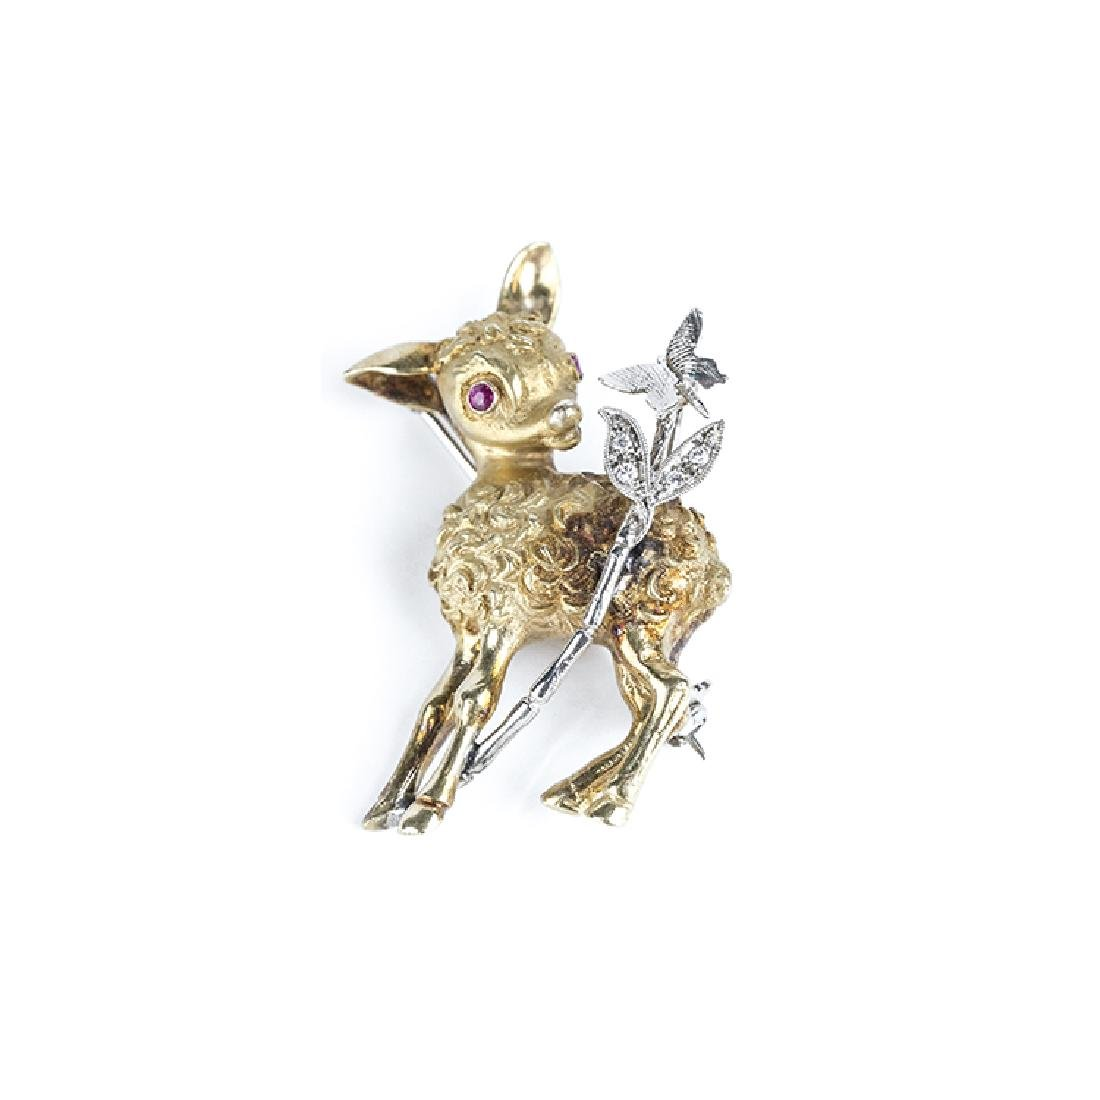 Little sheep-shaped brooch with butterfly